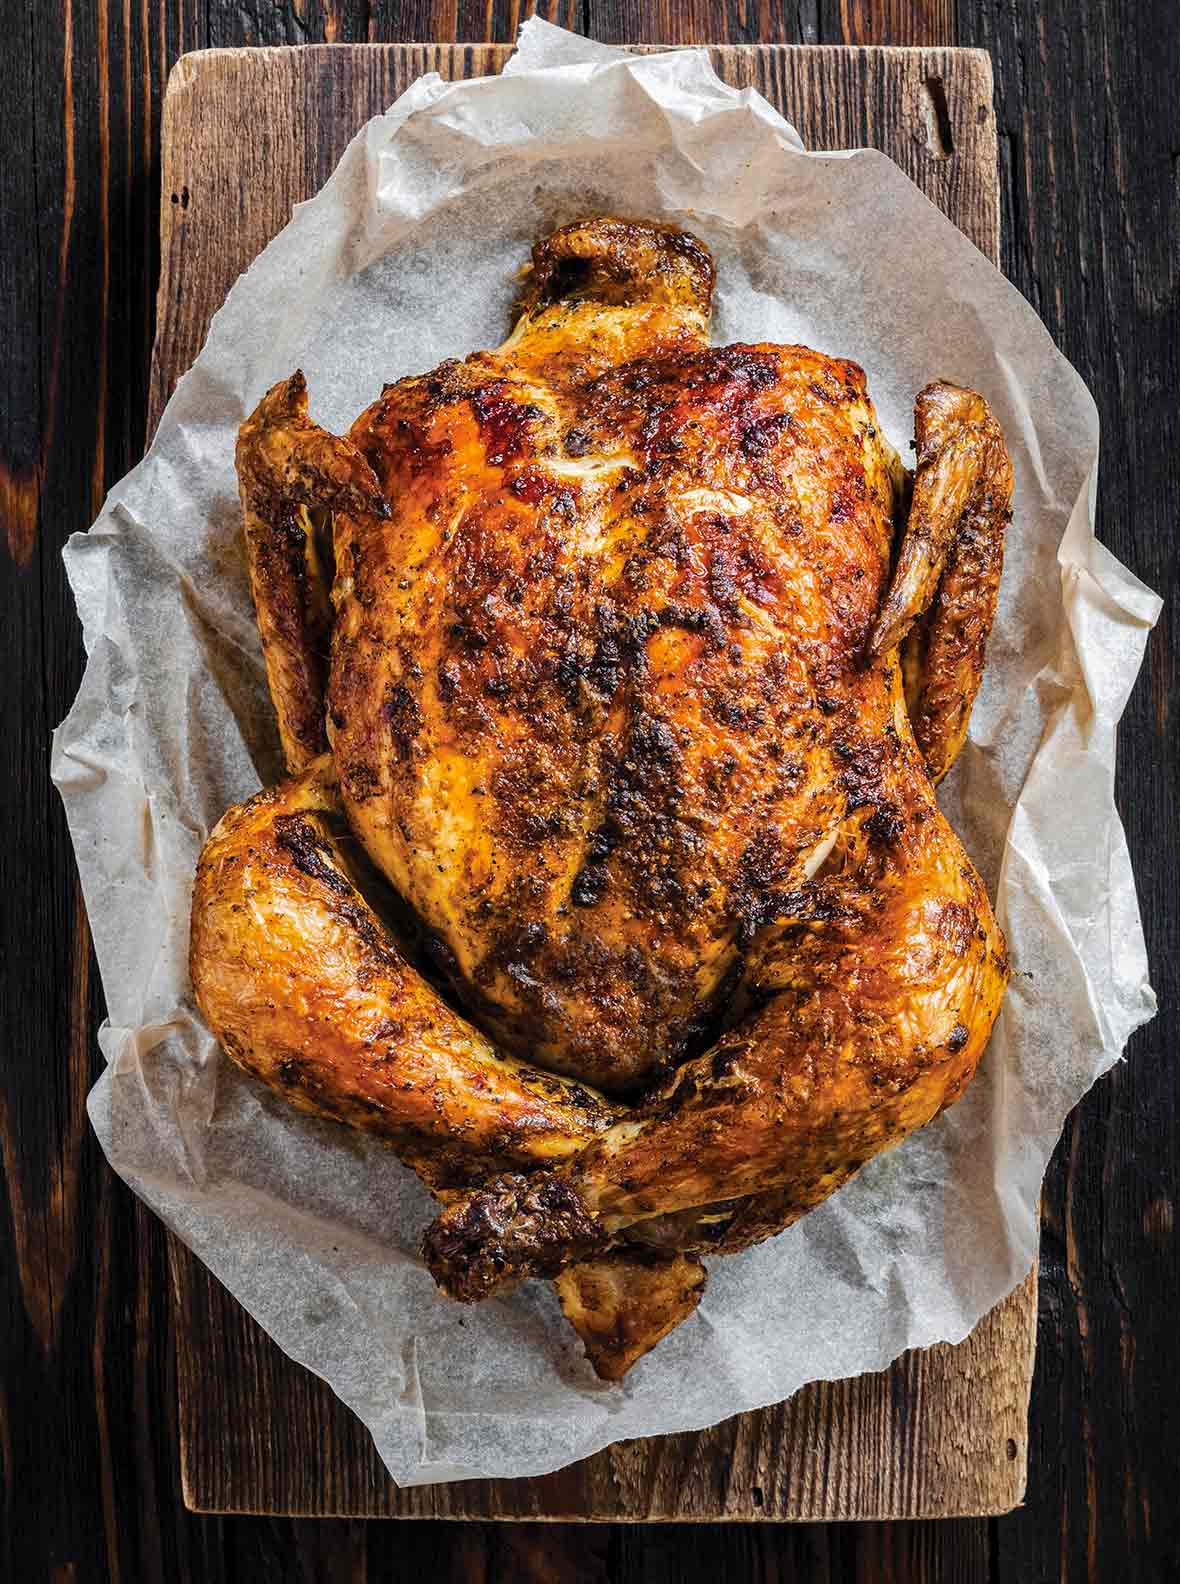 Spiced and herbed whole chicken, made in an Instant Pot, on parchment paper on a cutting board